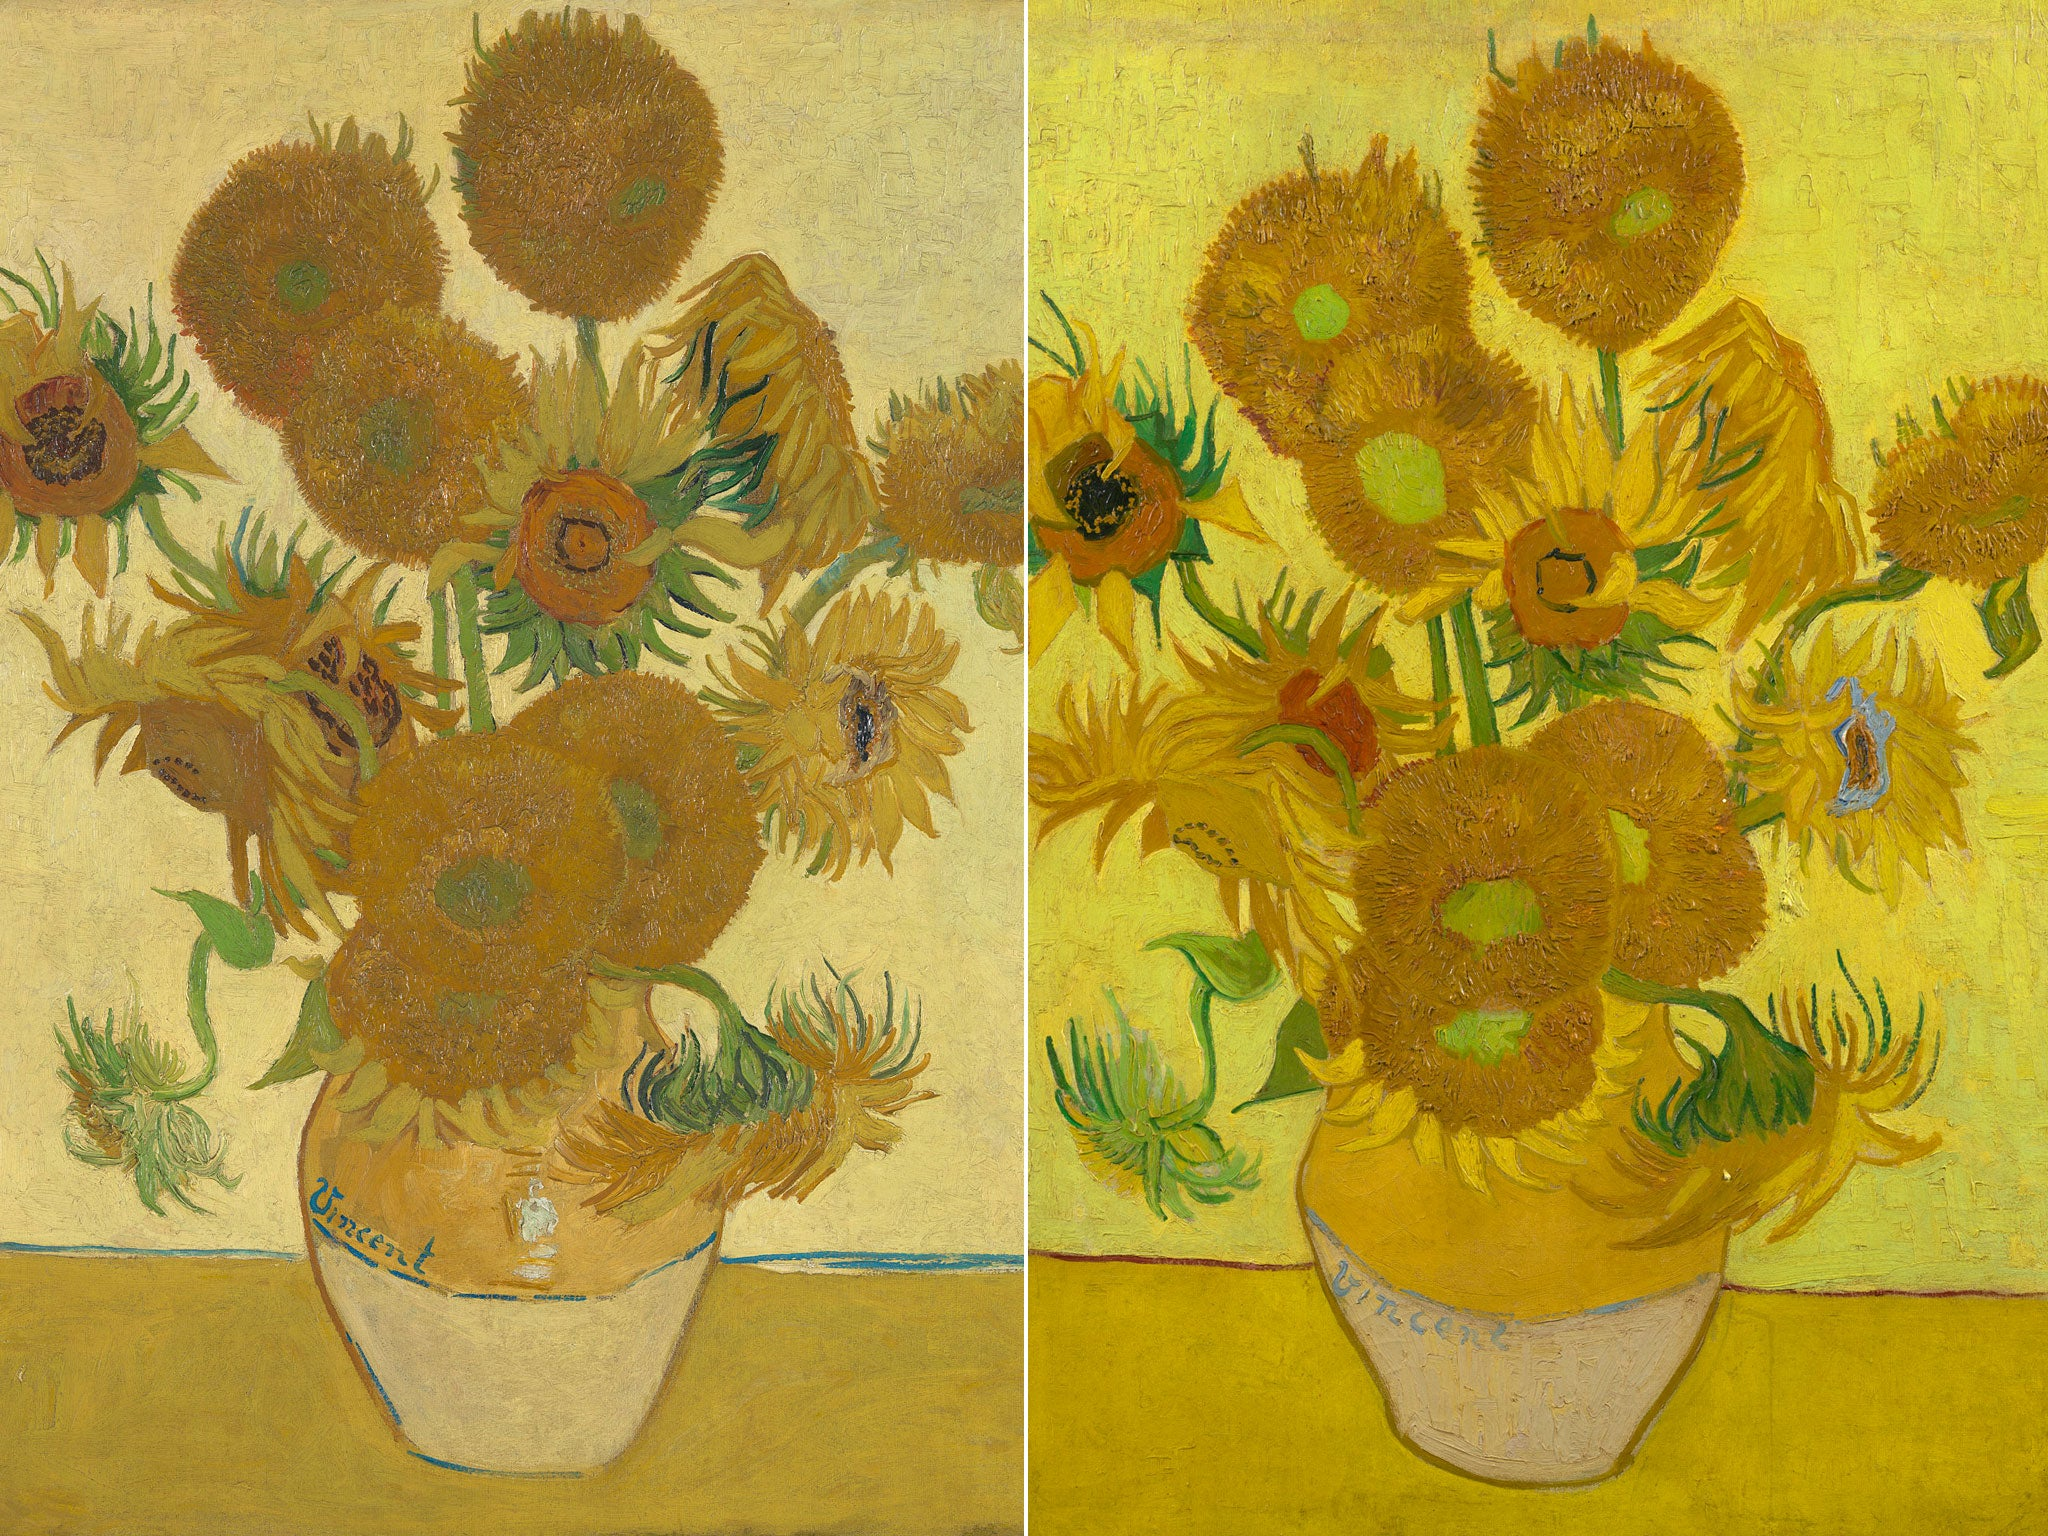 Two Van Gogh Sunflowers shown together at National Gallery